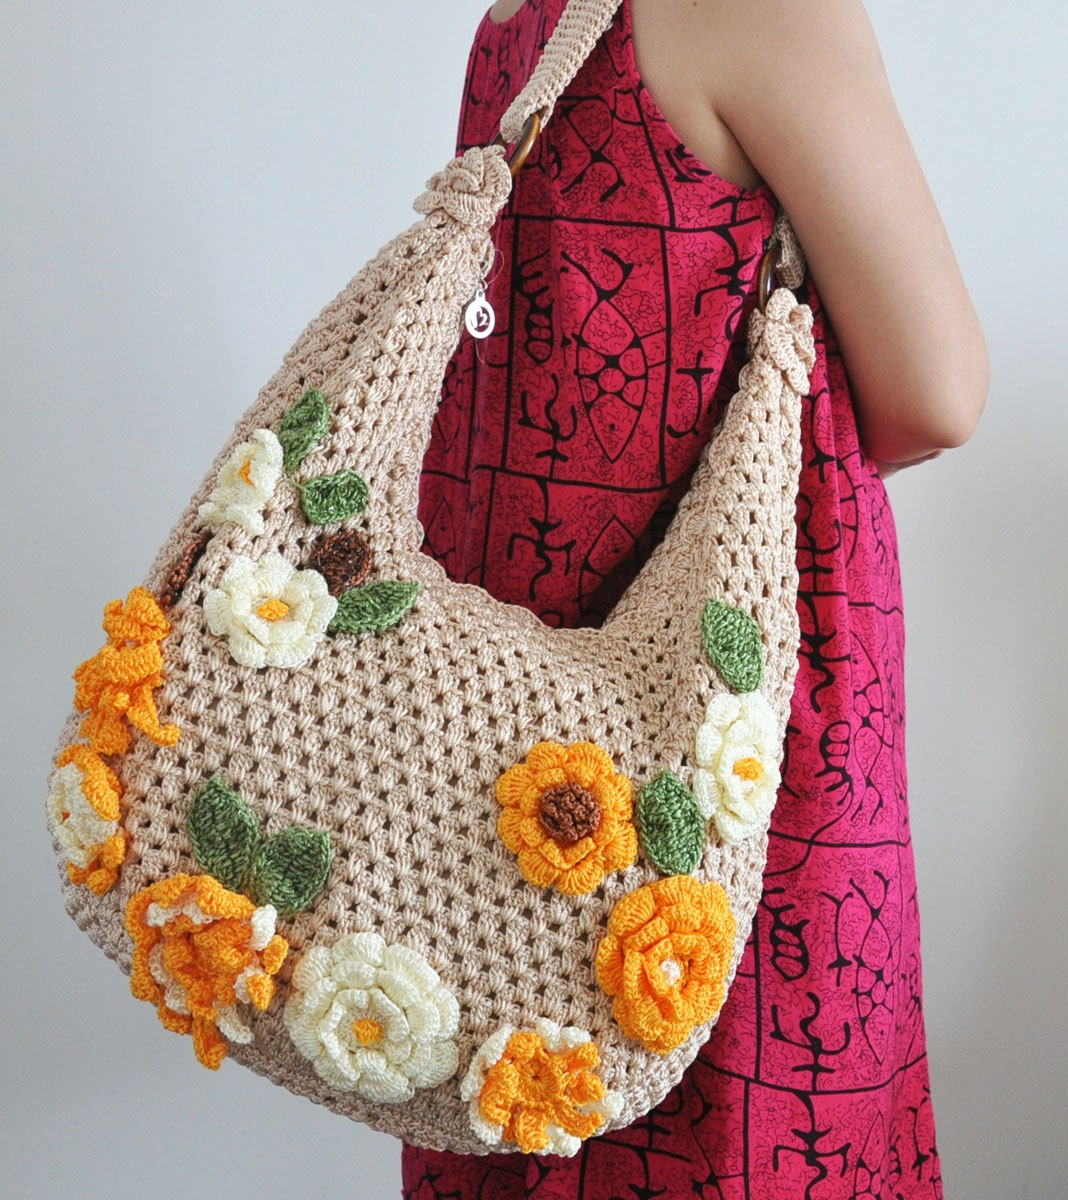 Crochet Bags Video : FLORAL BAG 5 Crochet Flower Applique Bag by jennysunny on Etsy